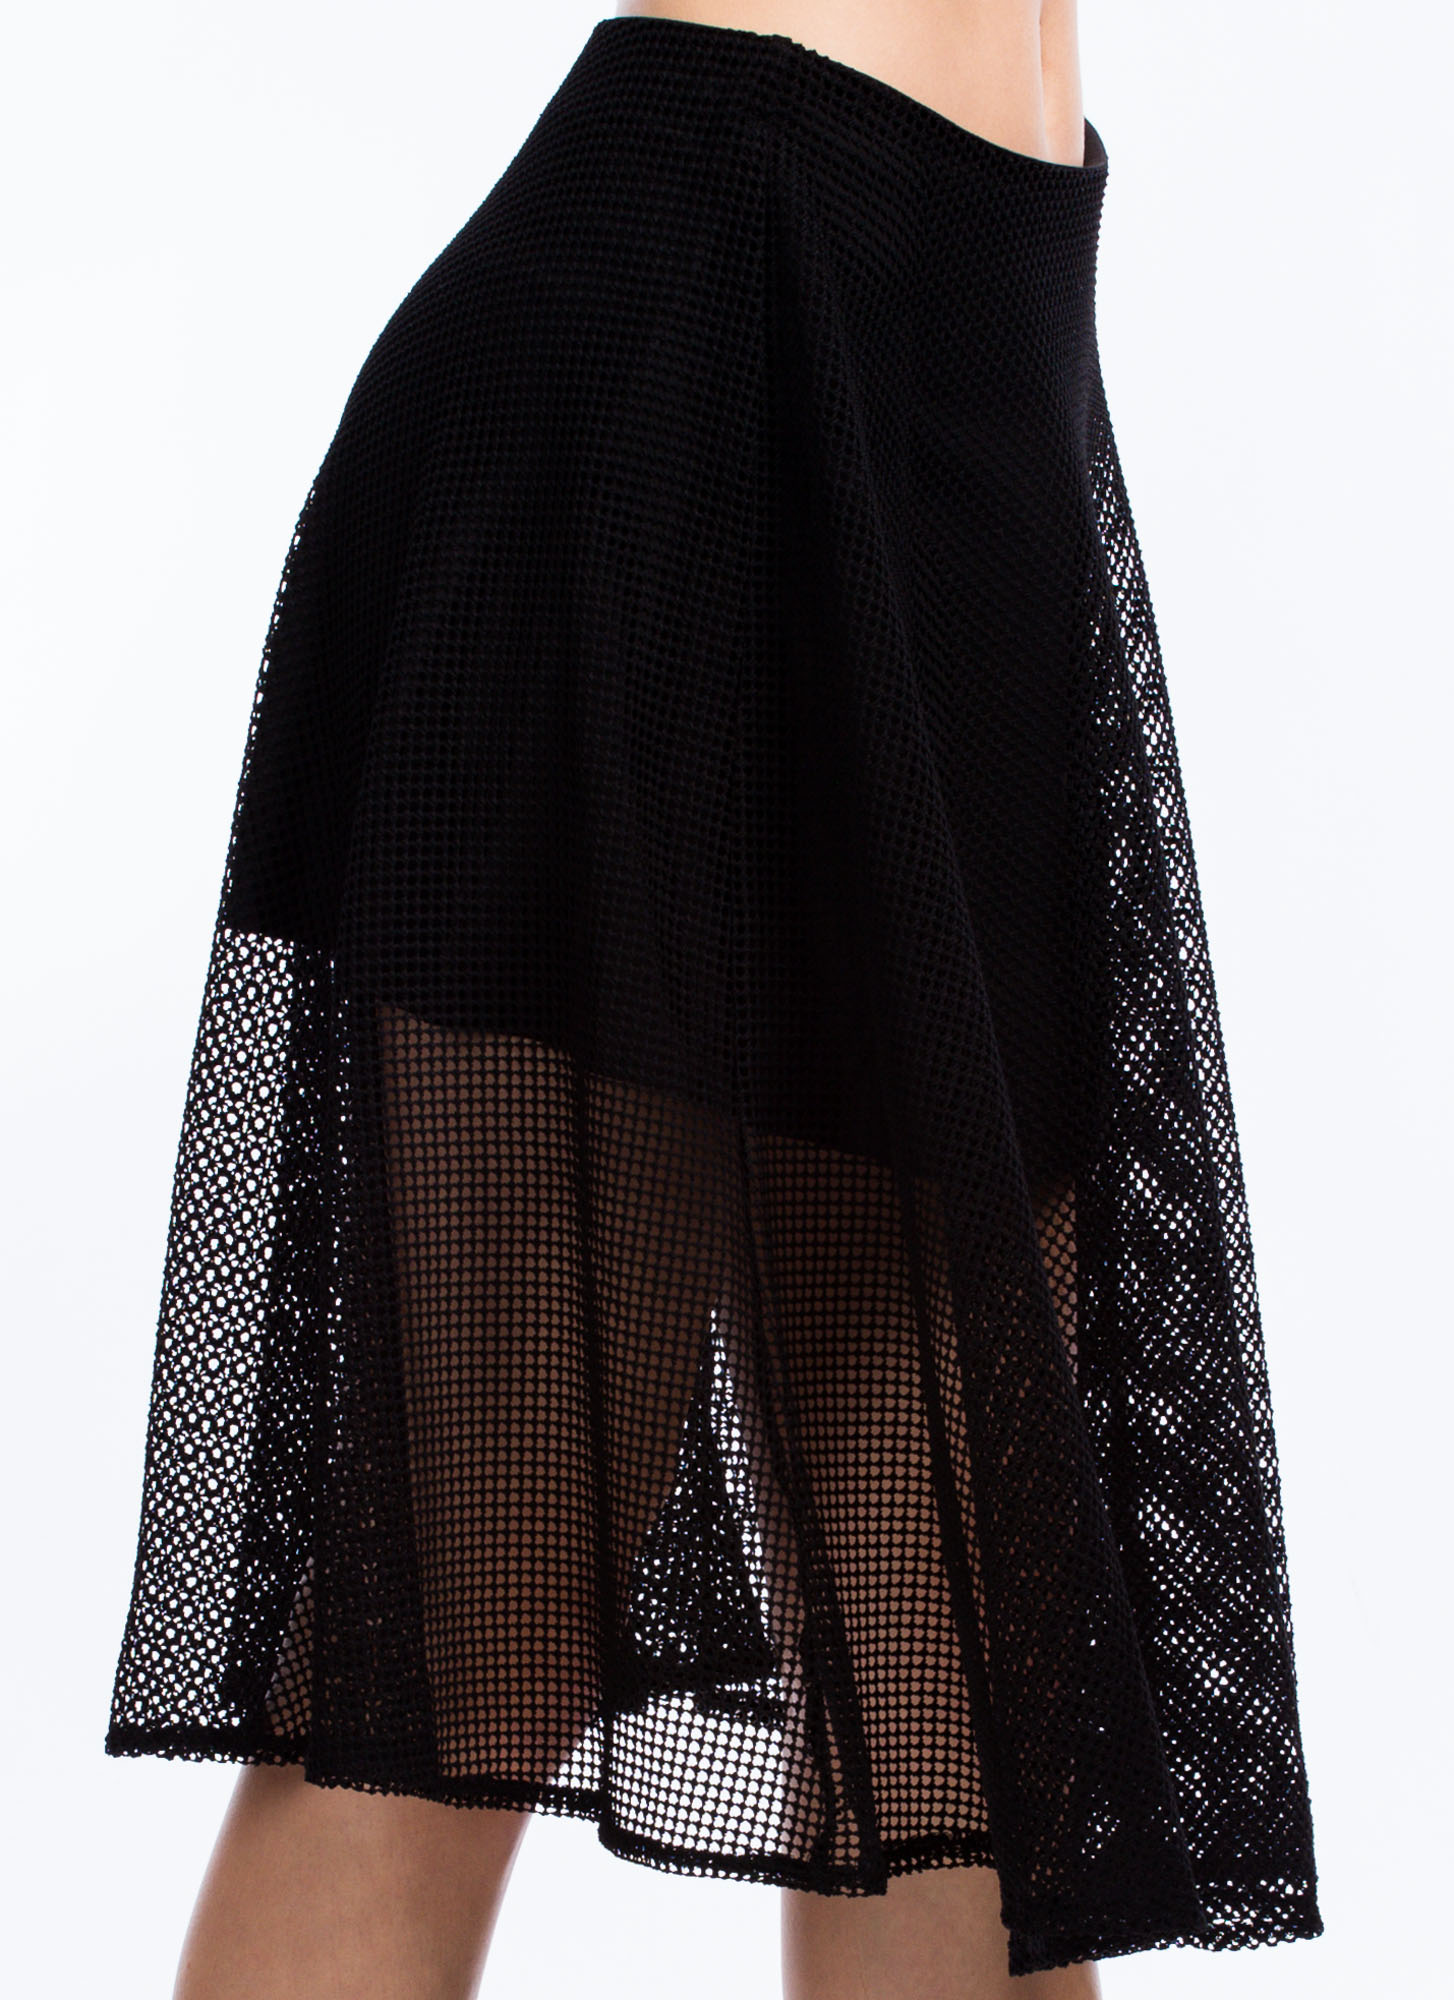 Net To Pay A-Line Skirt BLACK